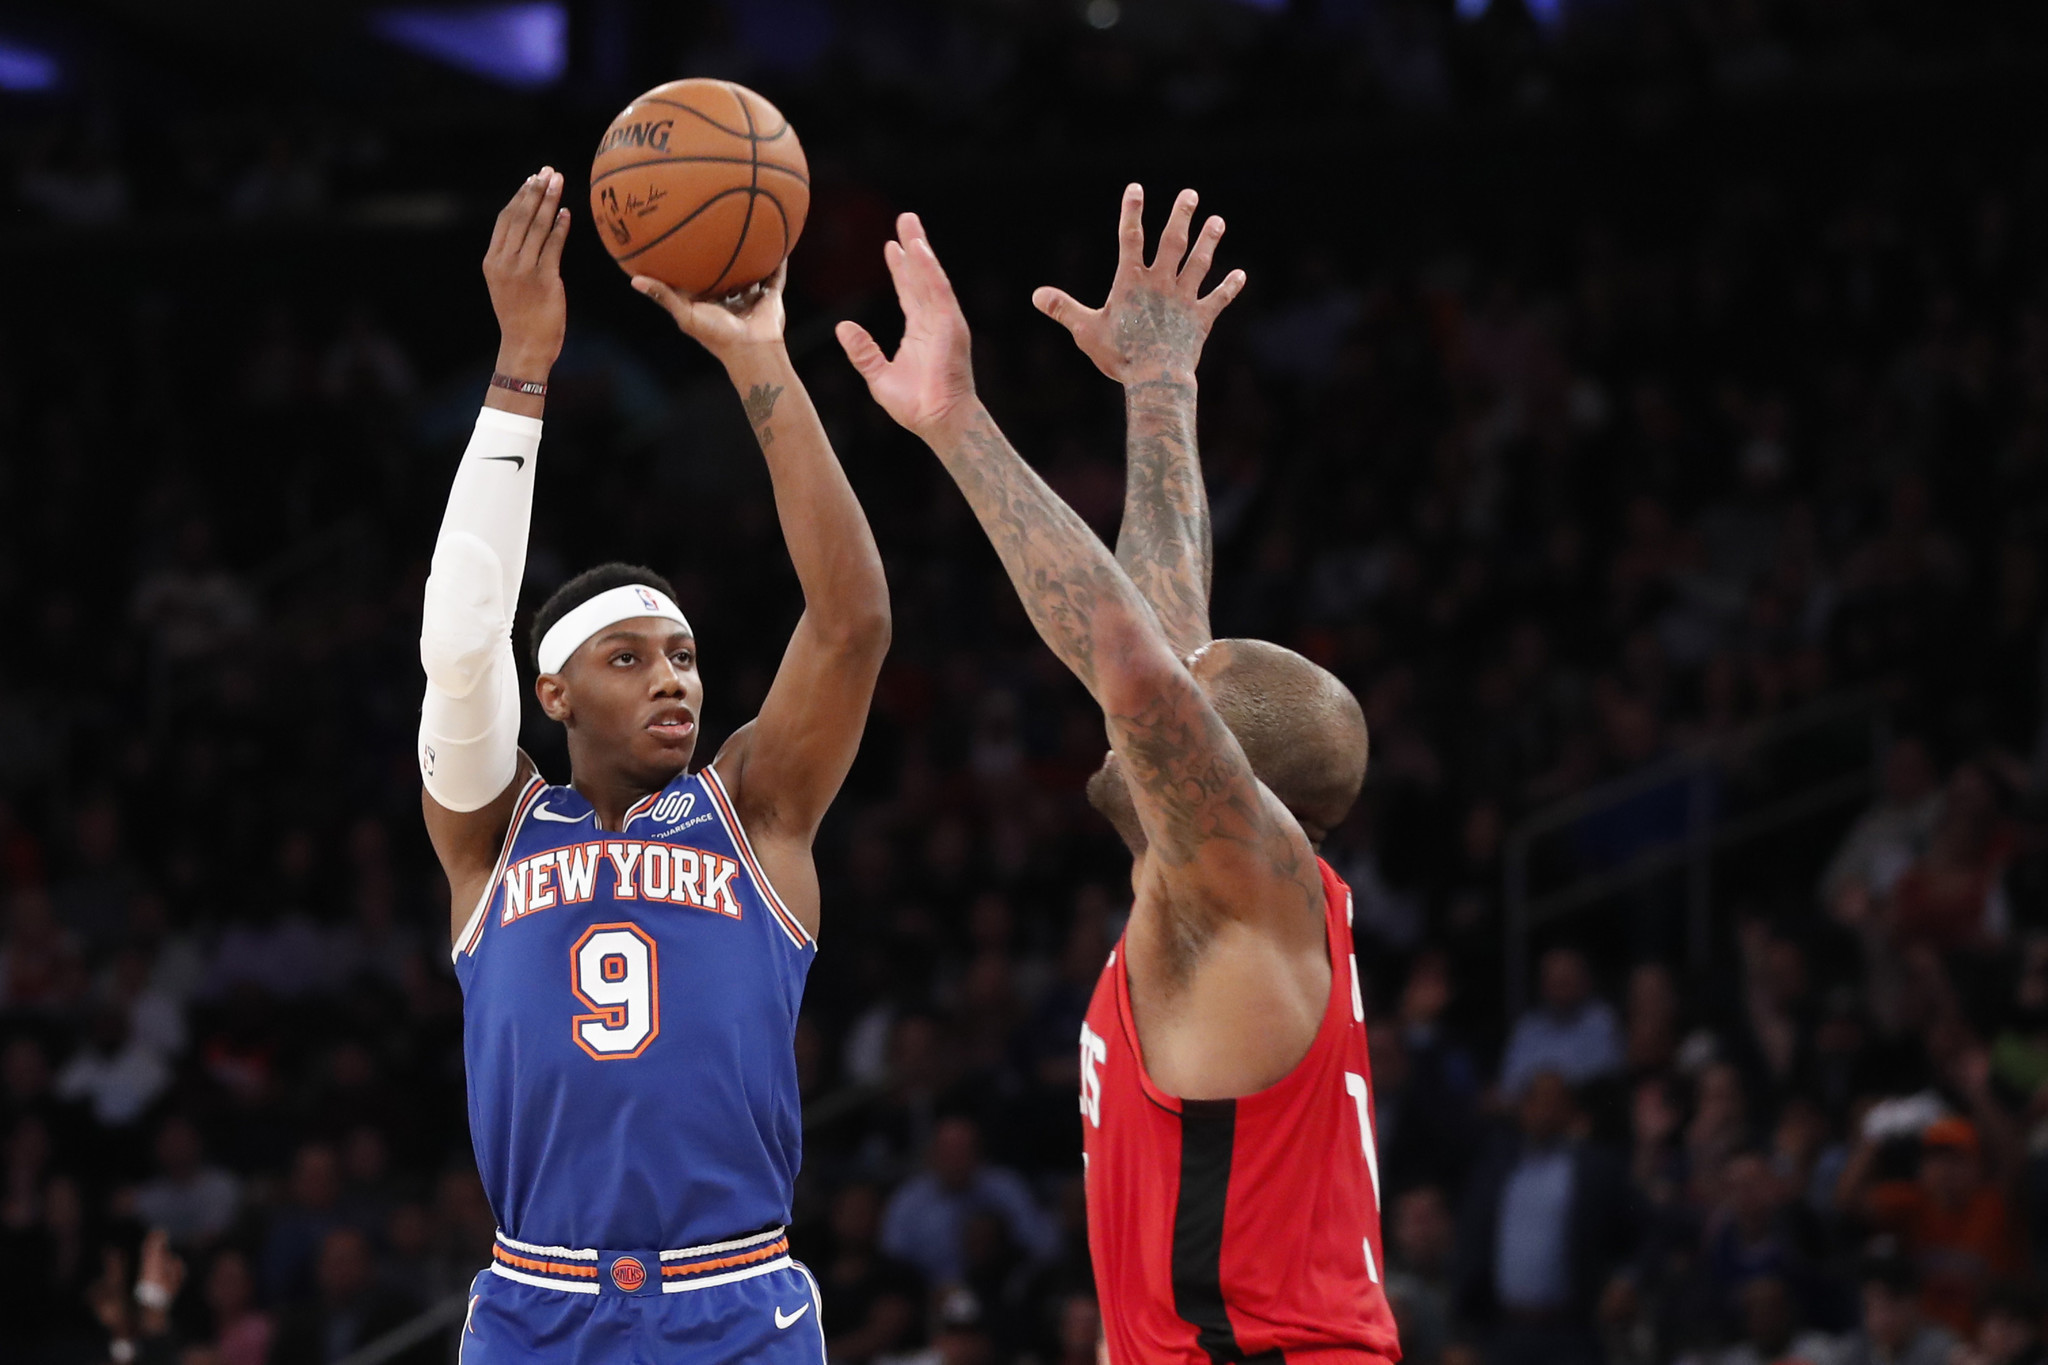 RJ Barrett plays the hero as Knicks beat Rockets and earn applause from Leon Rose